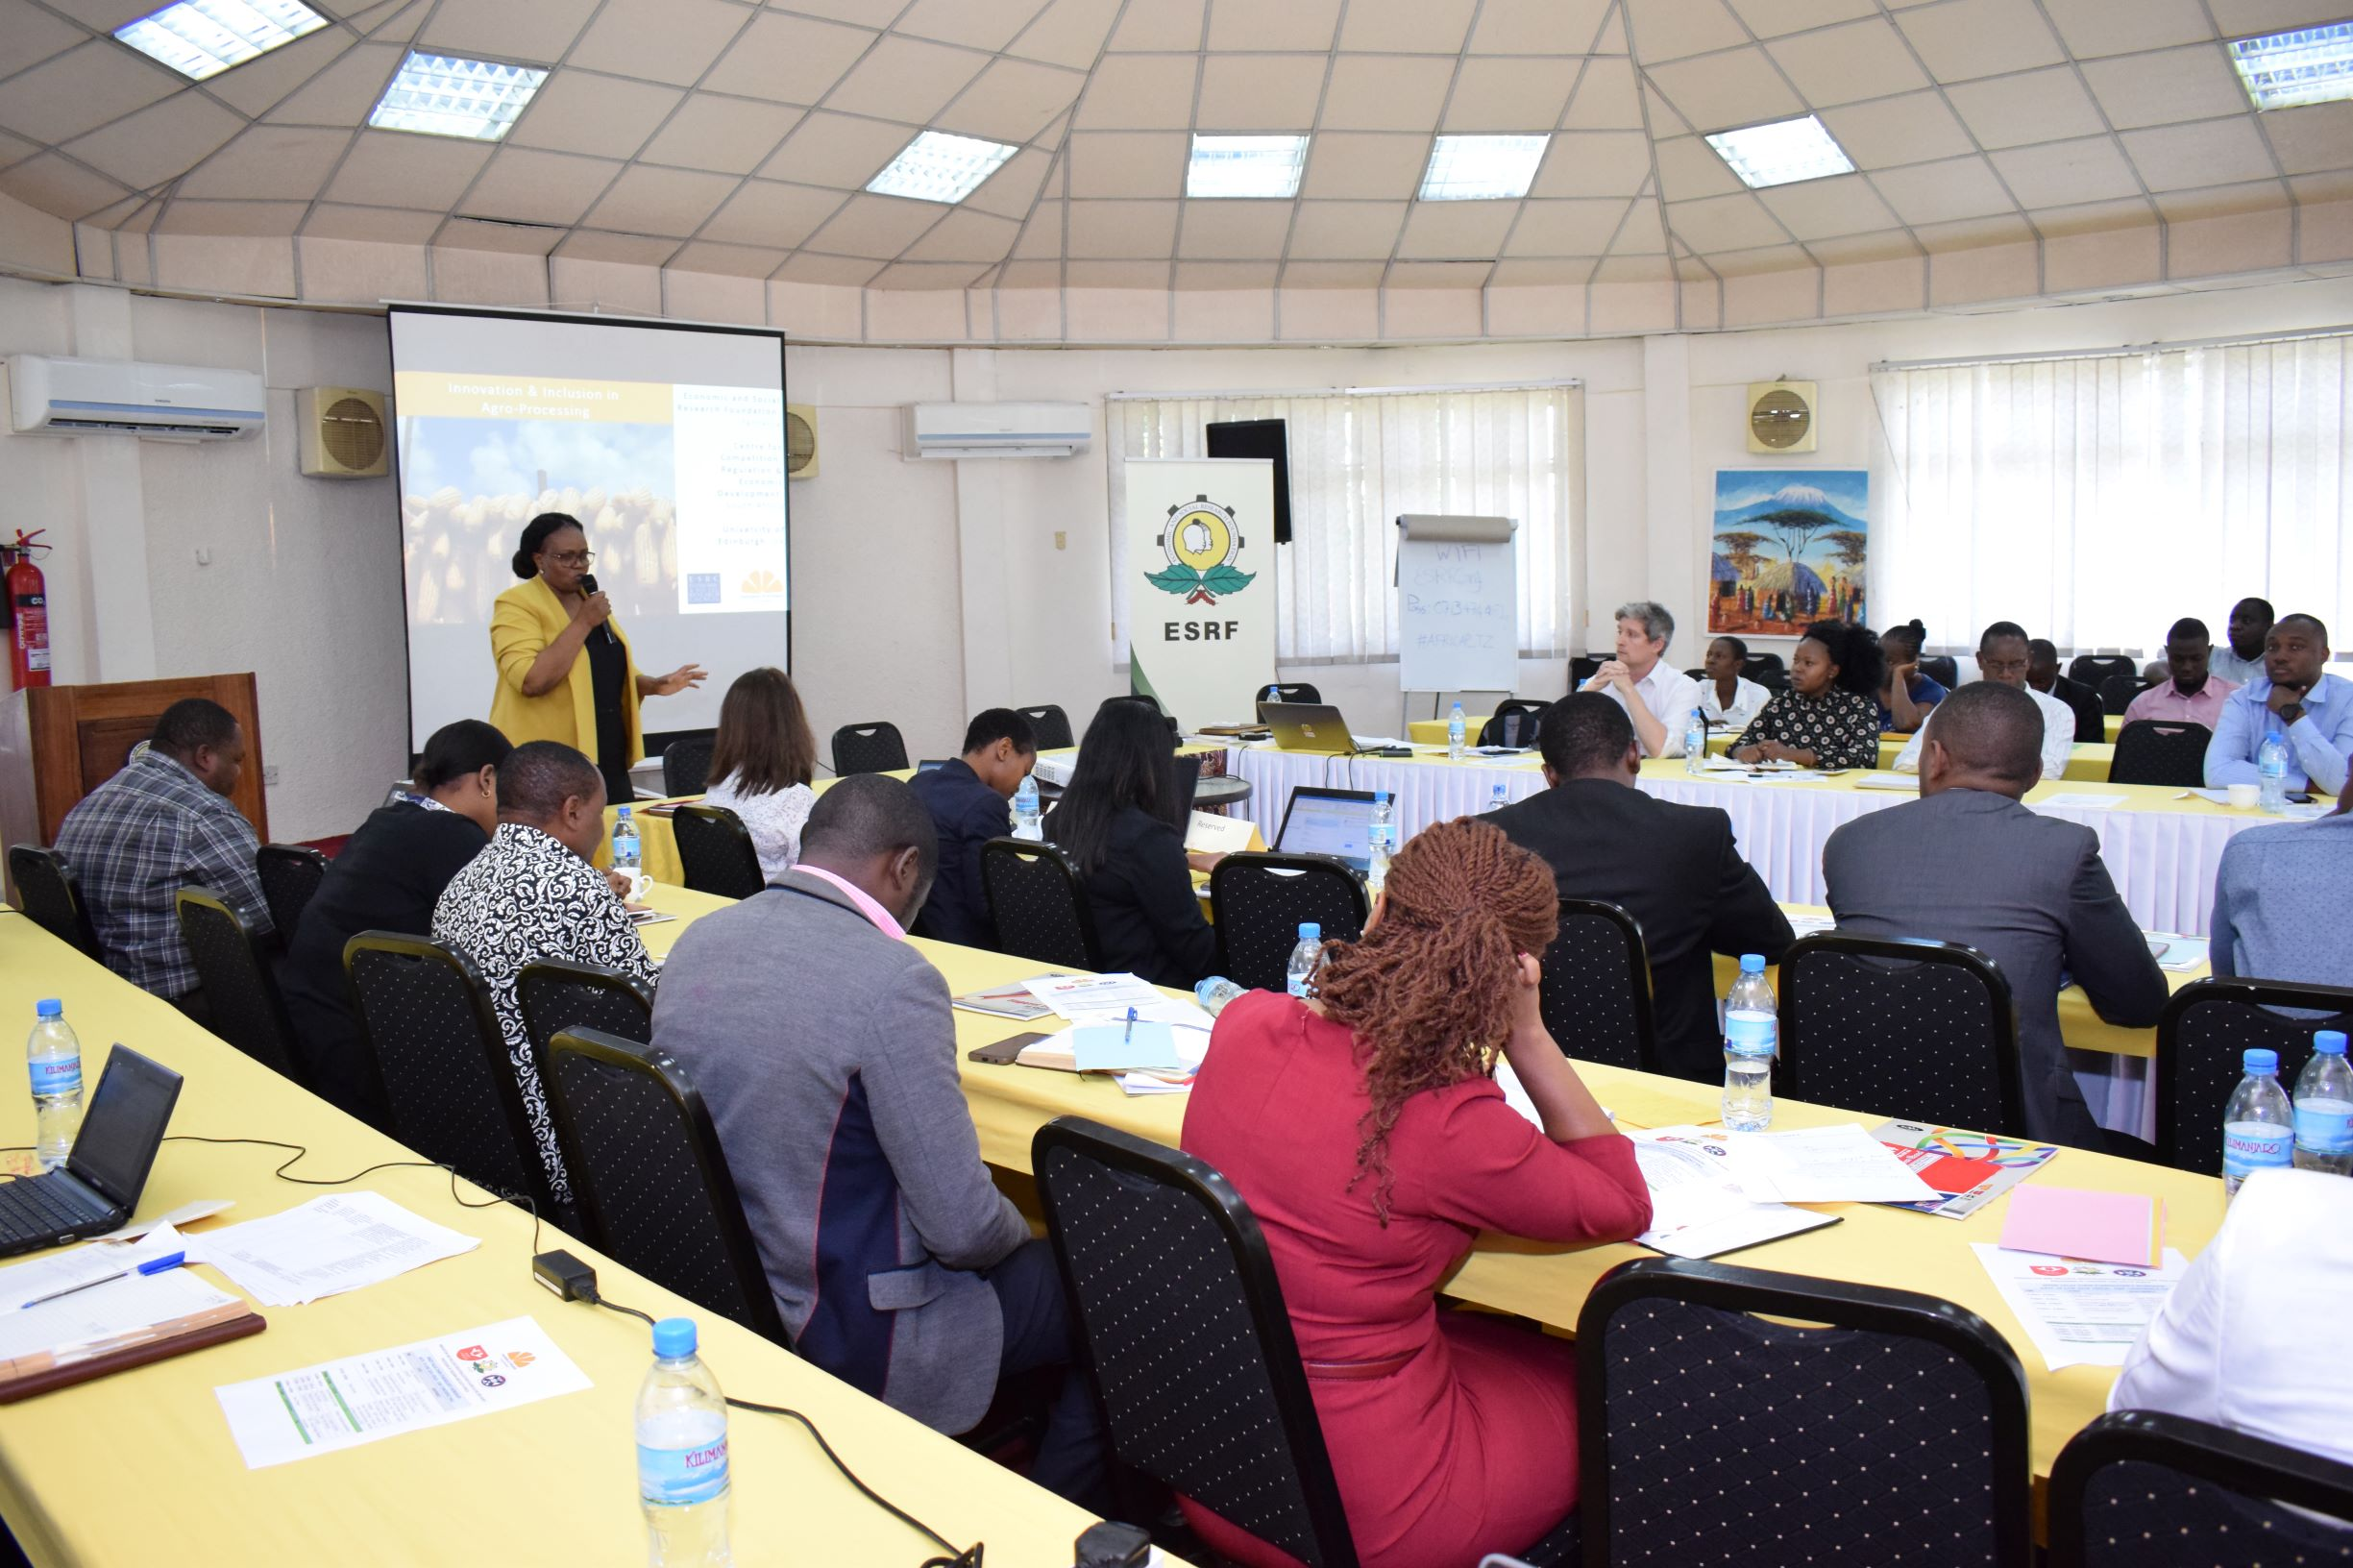 Professor Fortunata Makene introduces Day 2 of the stakeholder workshops on June 19th, 2019